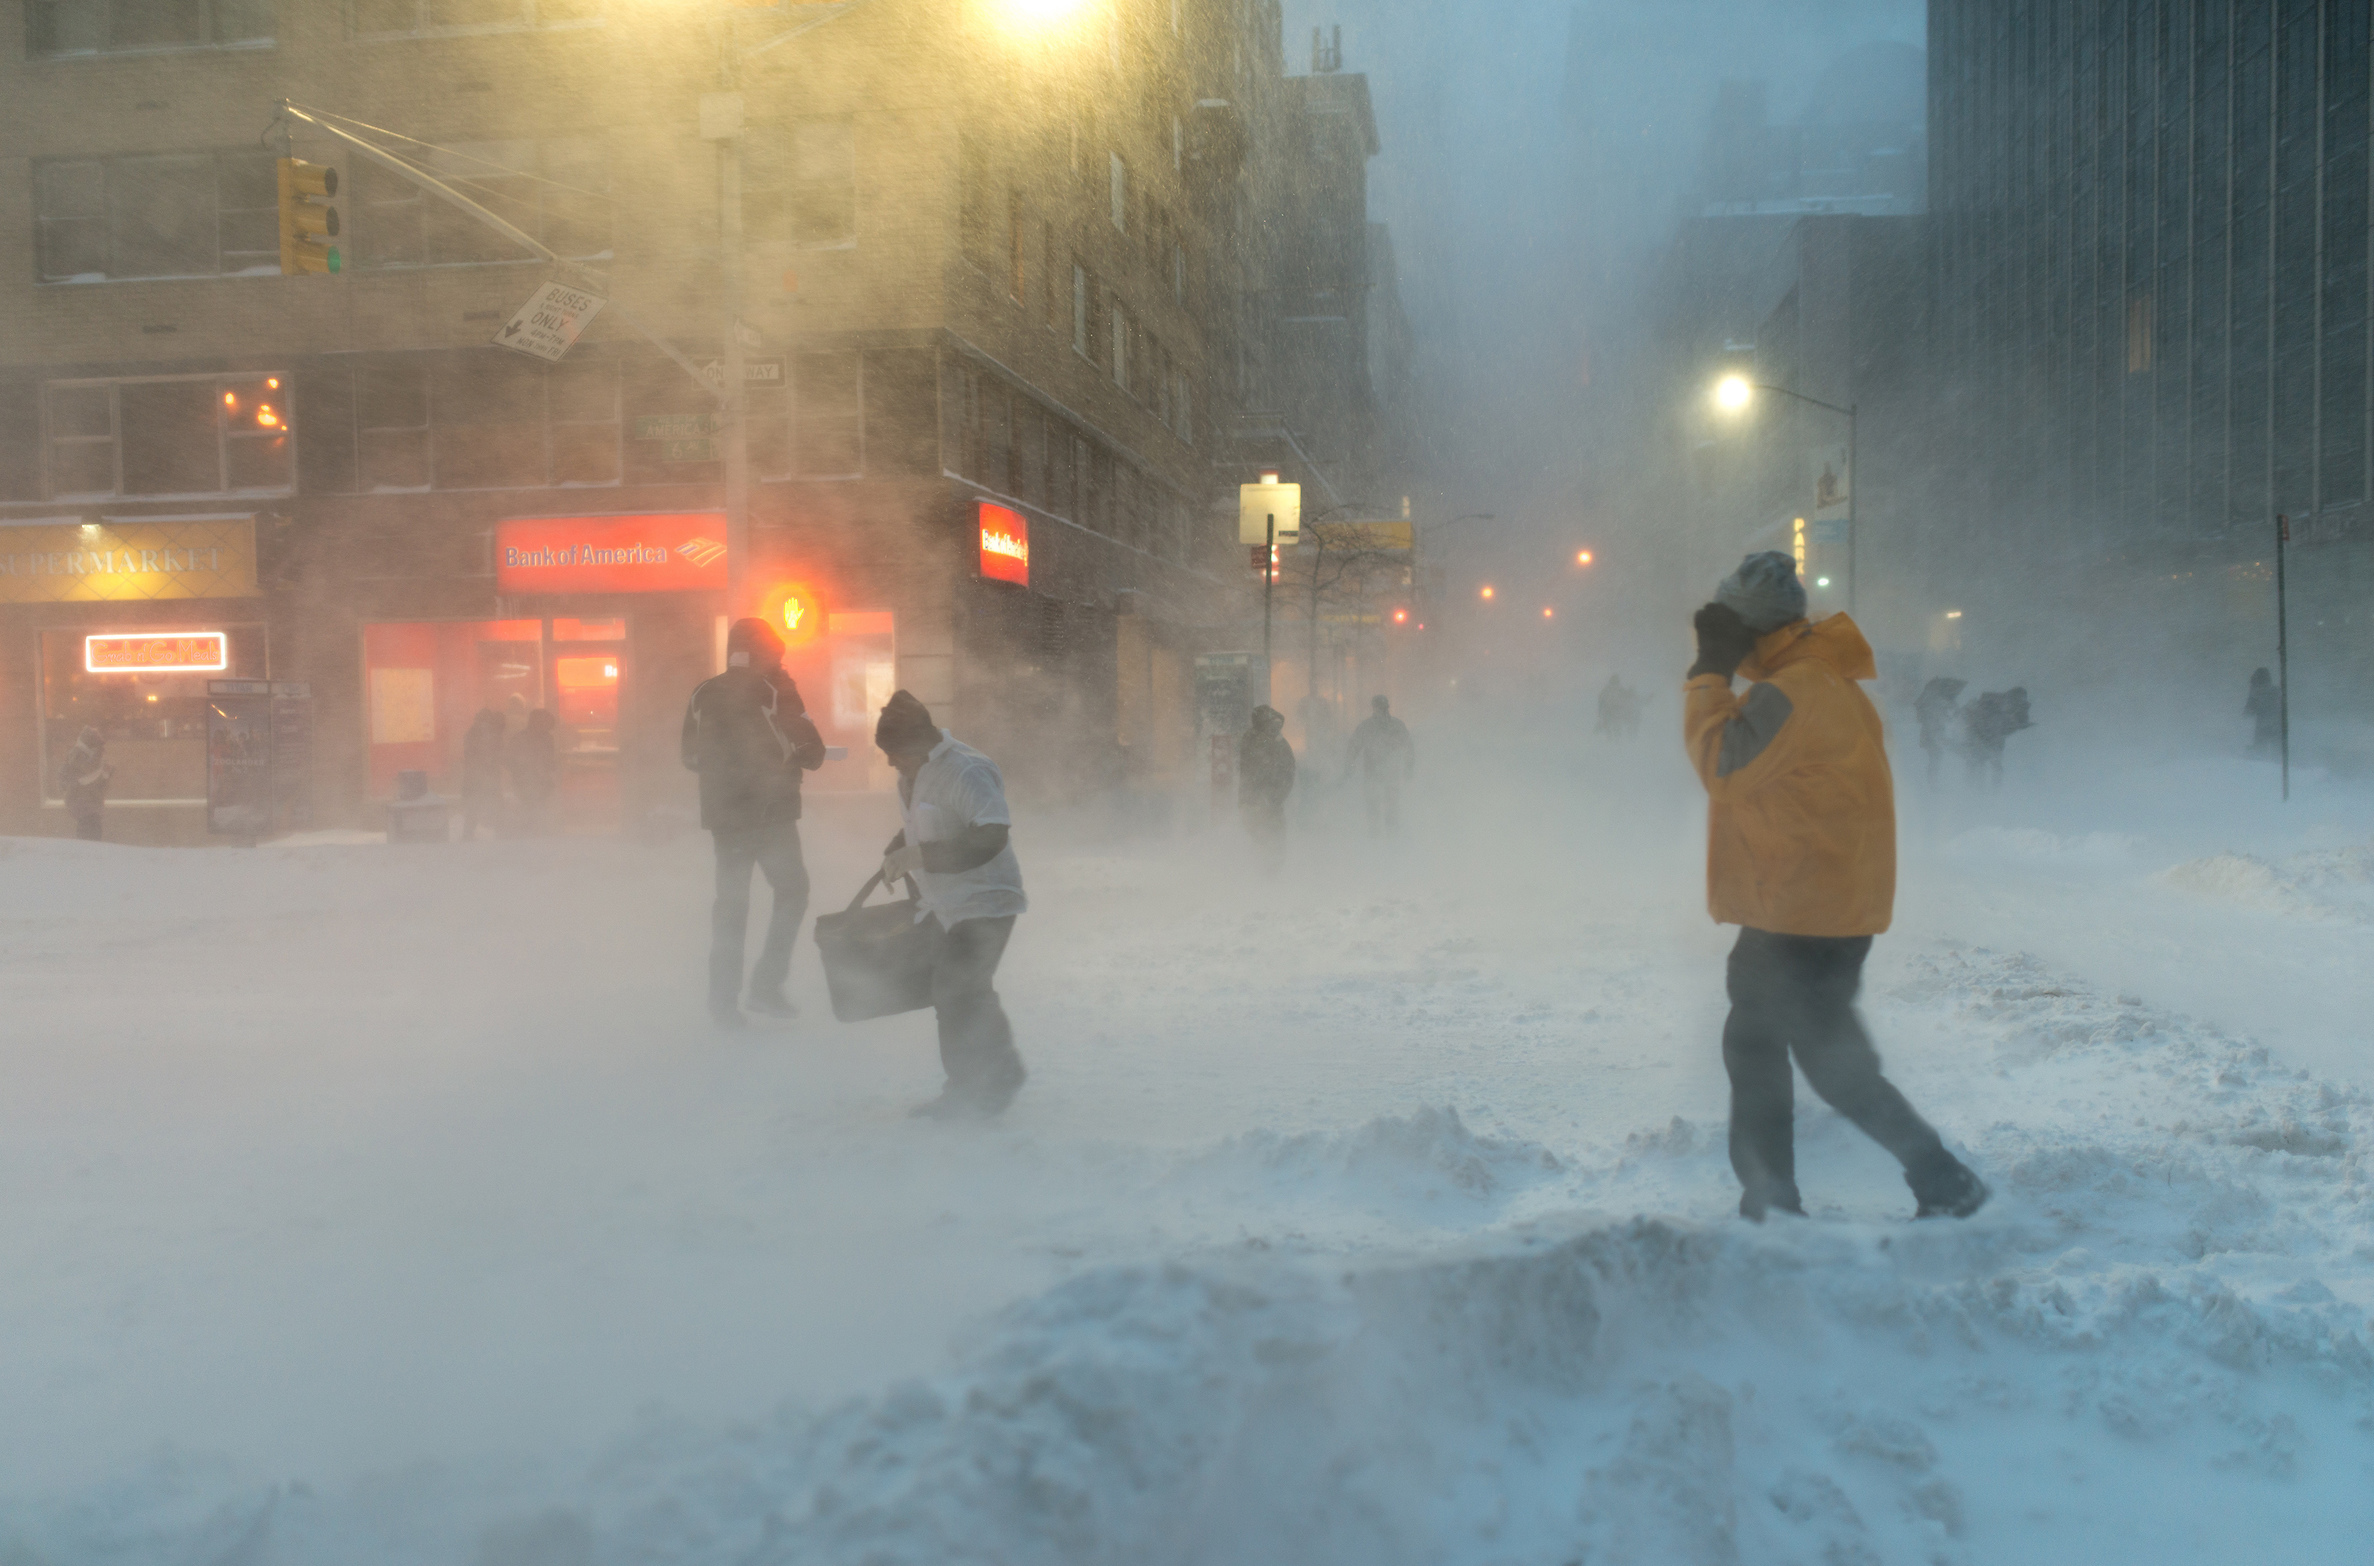 Tens of millions of people are in the path of a bomb cyclone, one of the most powerful winter storms in the country's history.